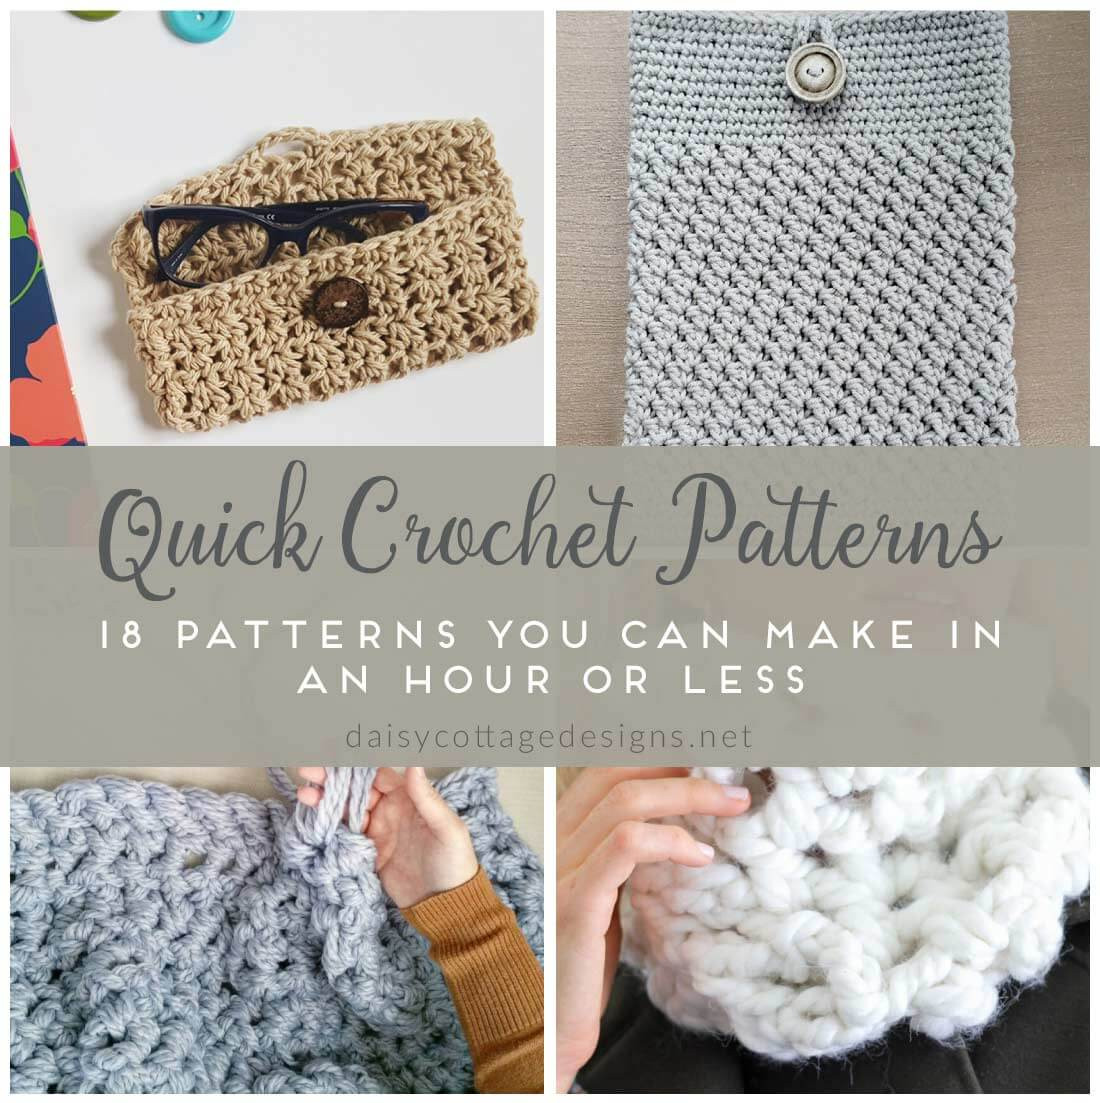 Crochet Projects Lovely Easy Crochet Patterns Free Crochet Patterns On Daisy Of Unique 44 Pictures Crochet Projects